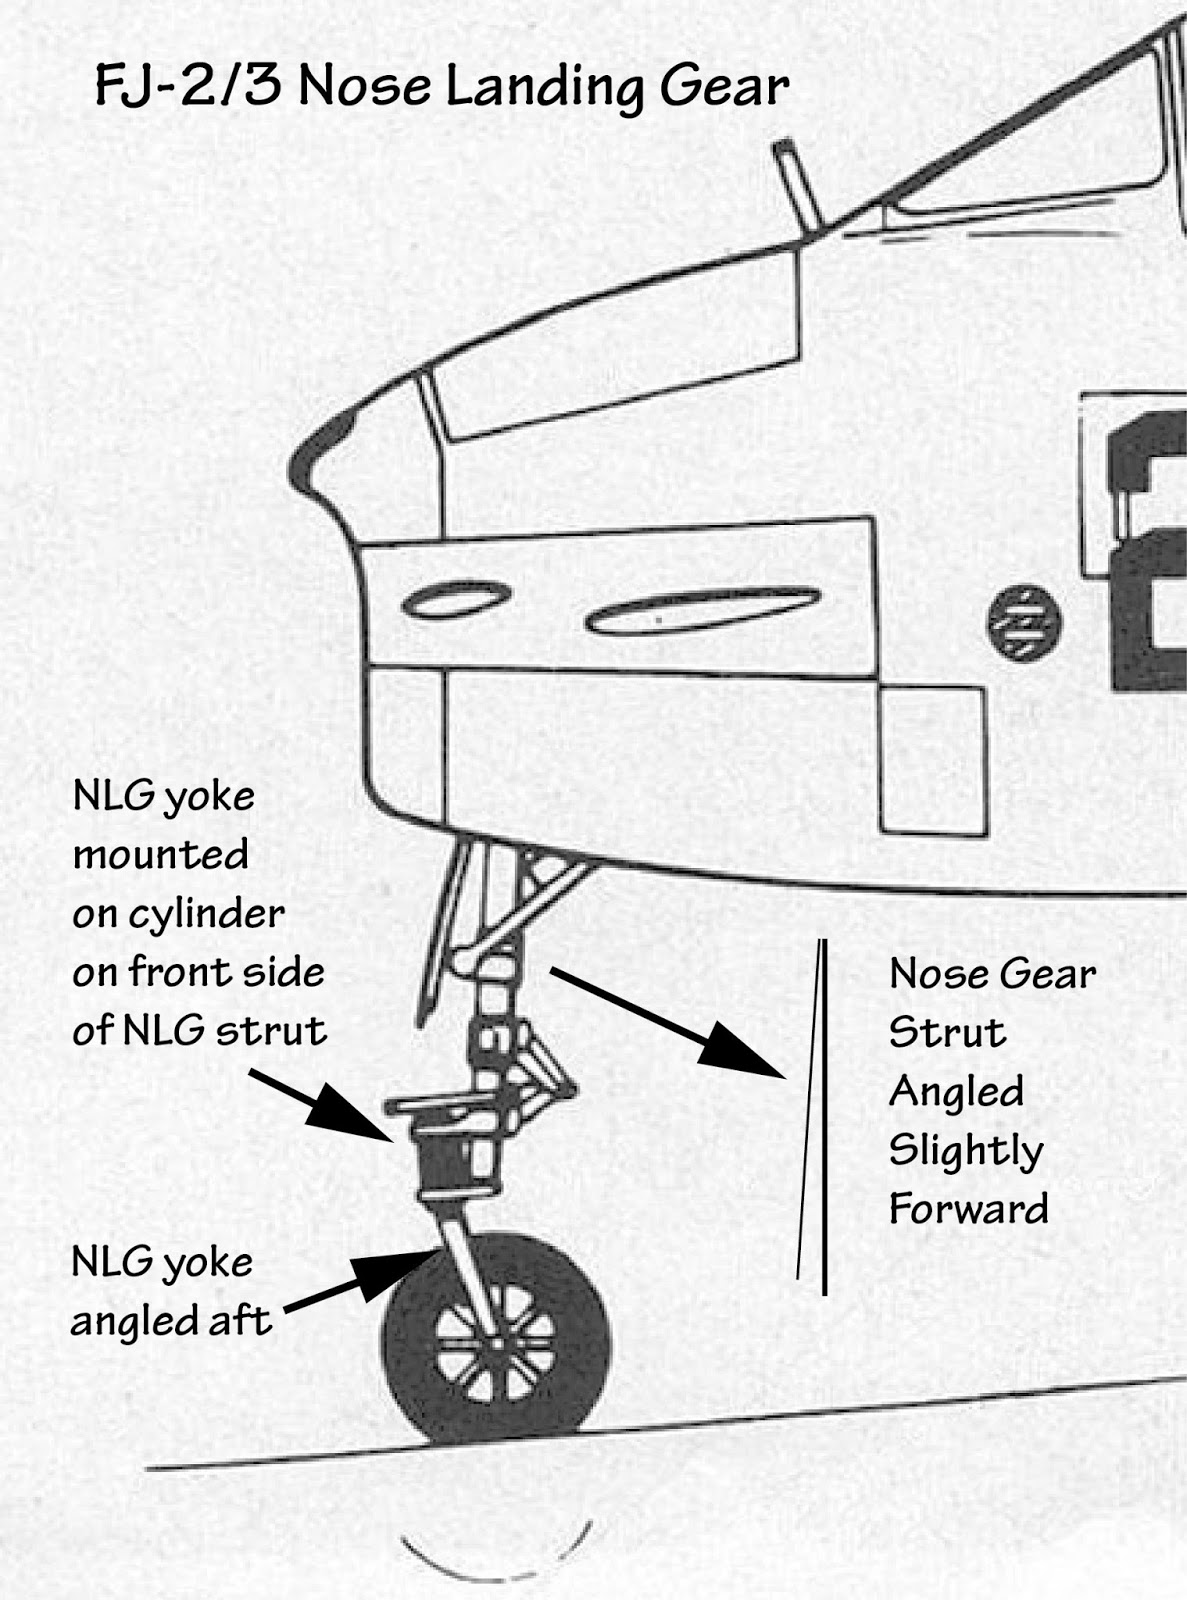 Tailhook Topics Drafts: FJ-2/3 Nose Landing Gear